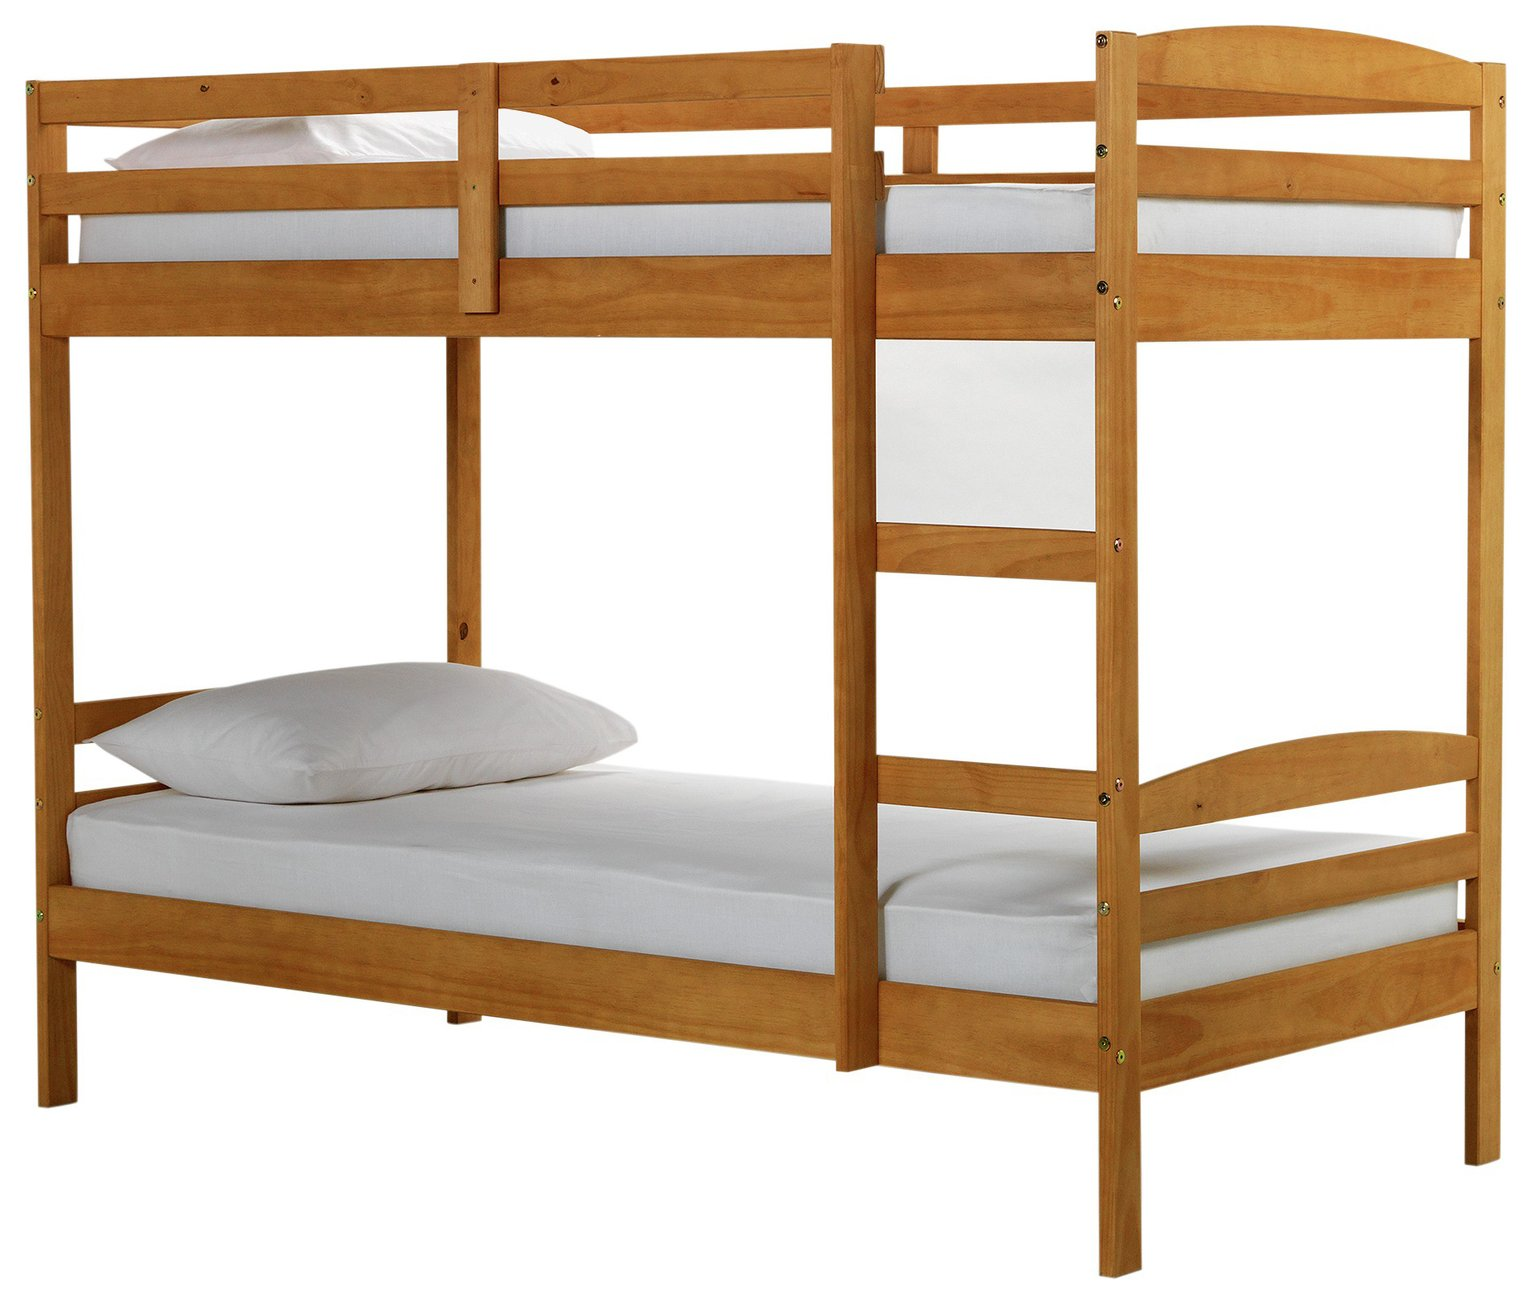 Cheap Bunk Beds Cheapest Childrens Bunk Beds Deals And